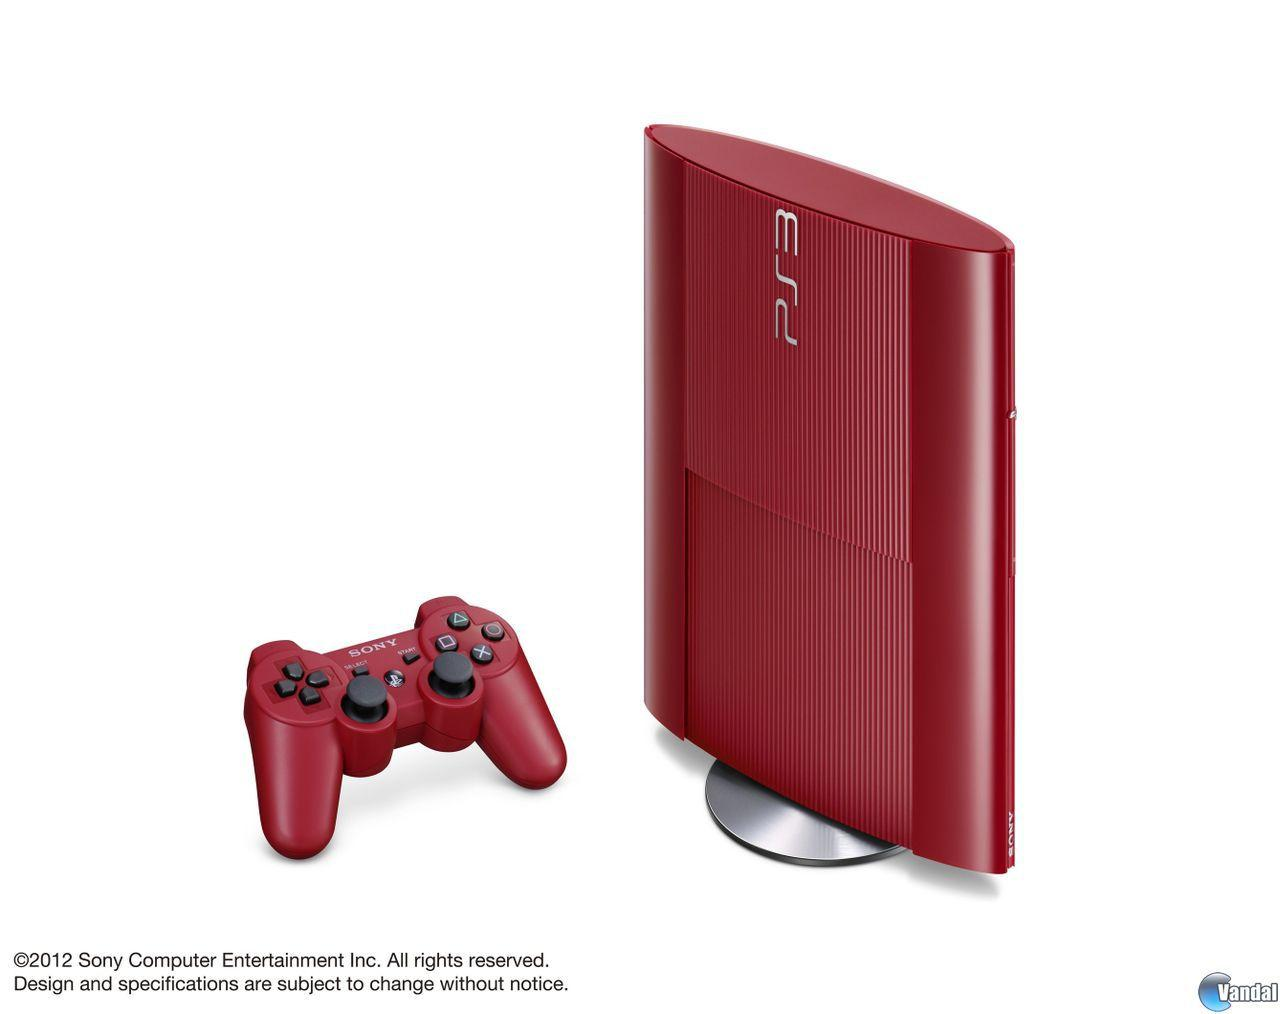 Las PS3 roja y azul llegarn a Europa